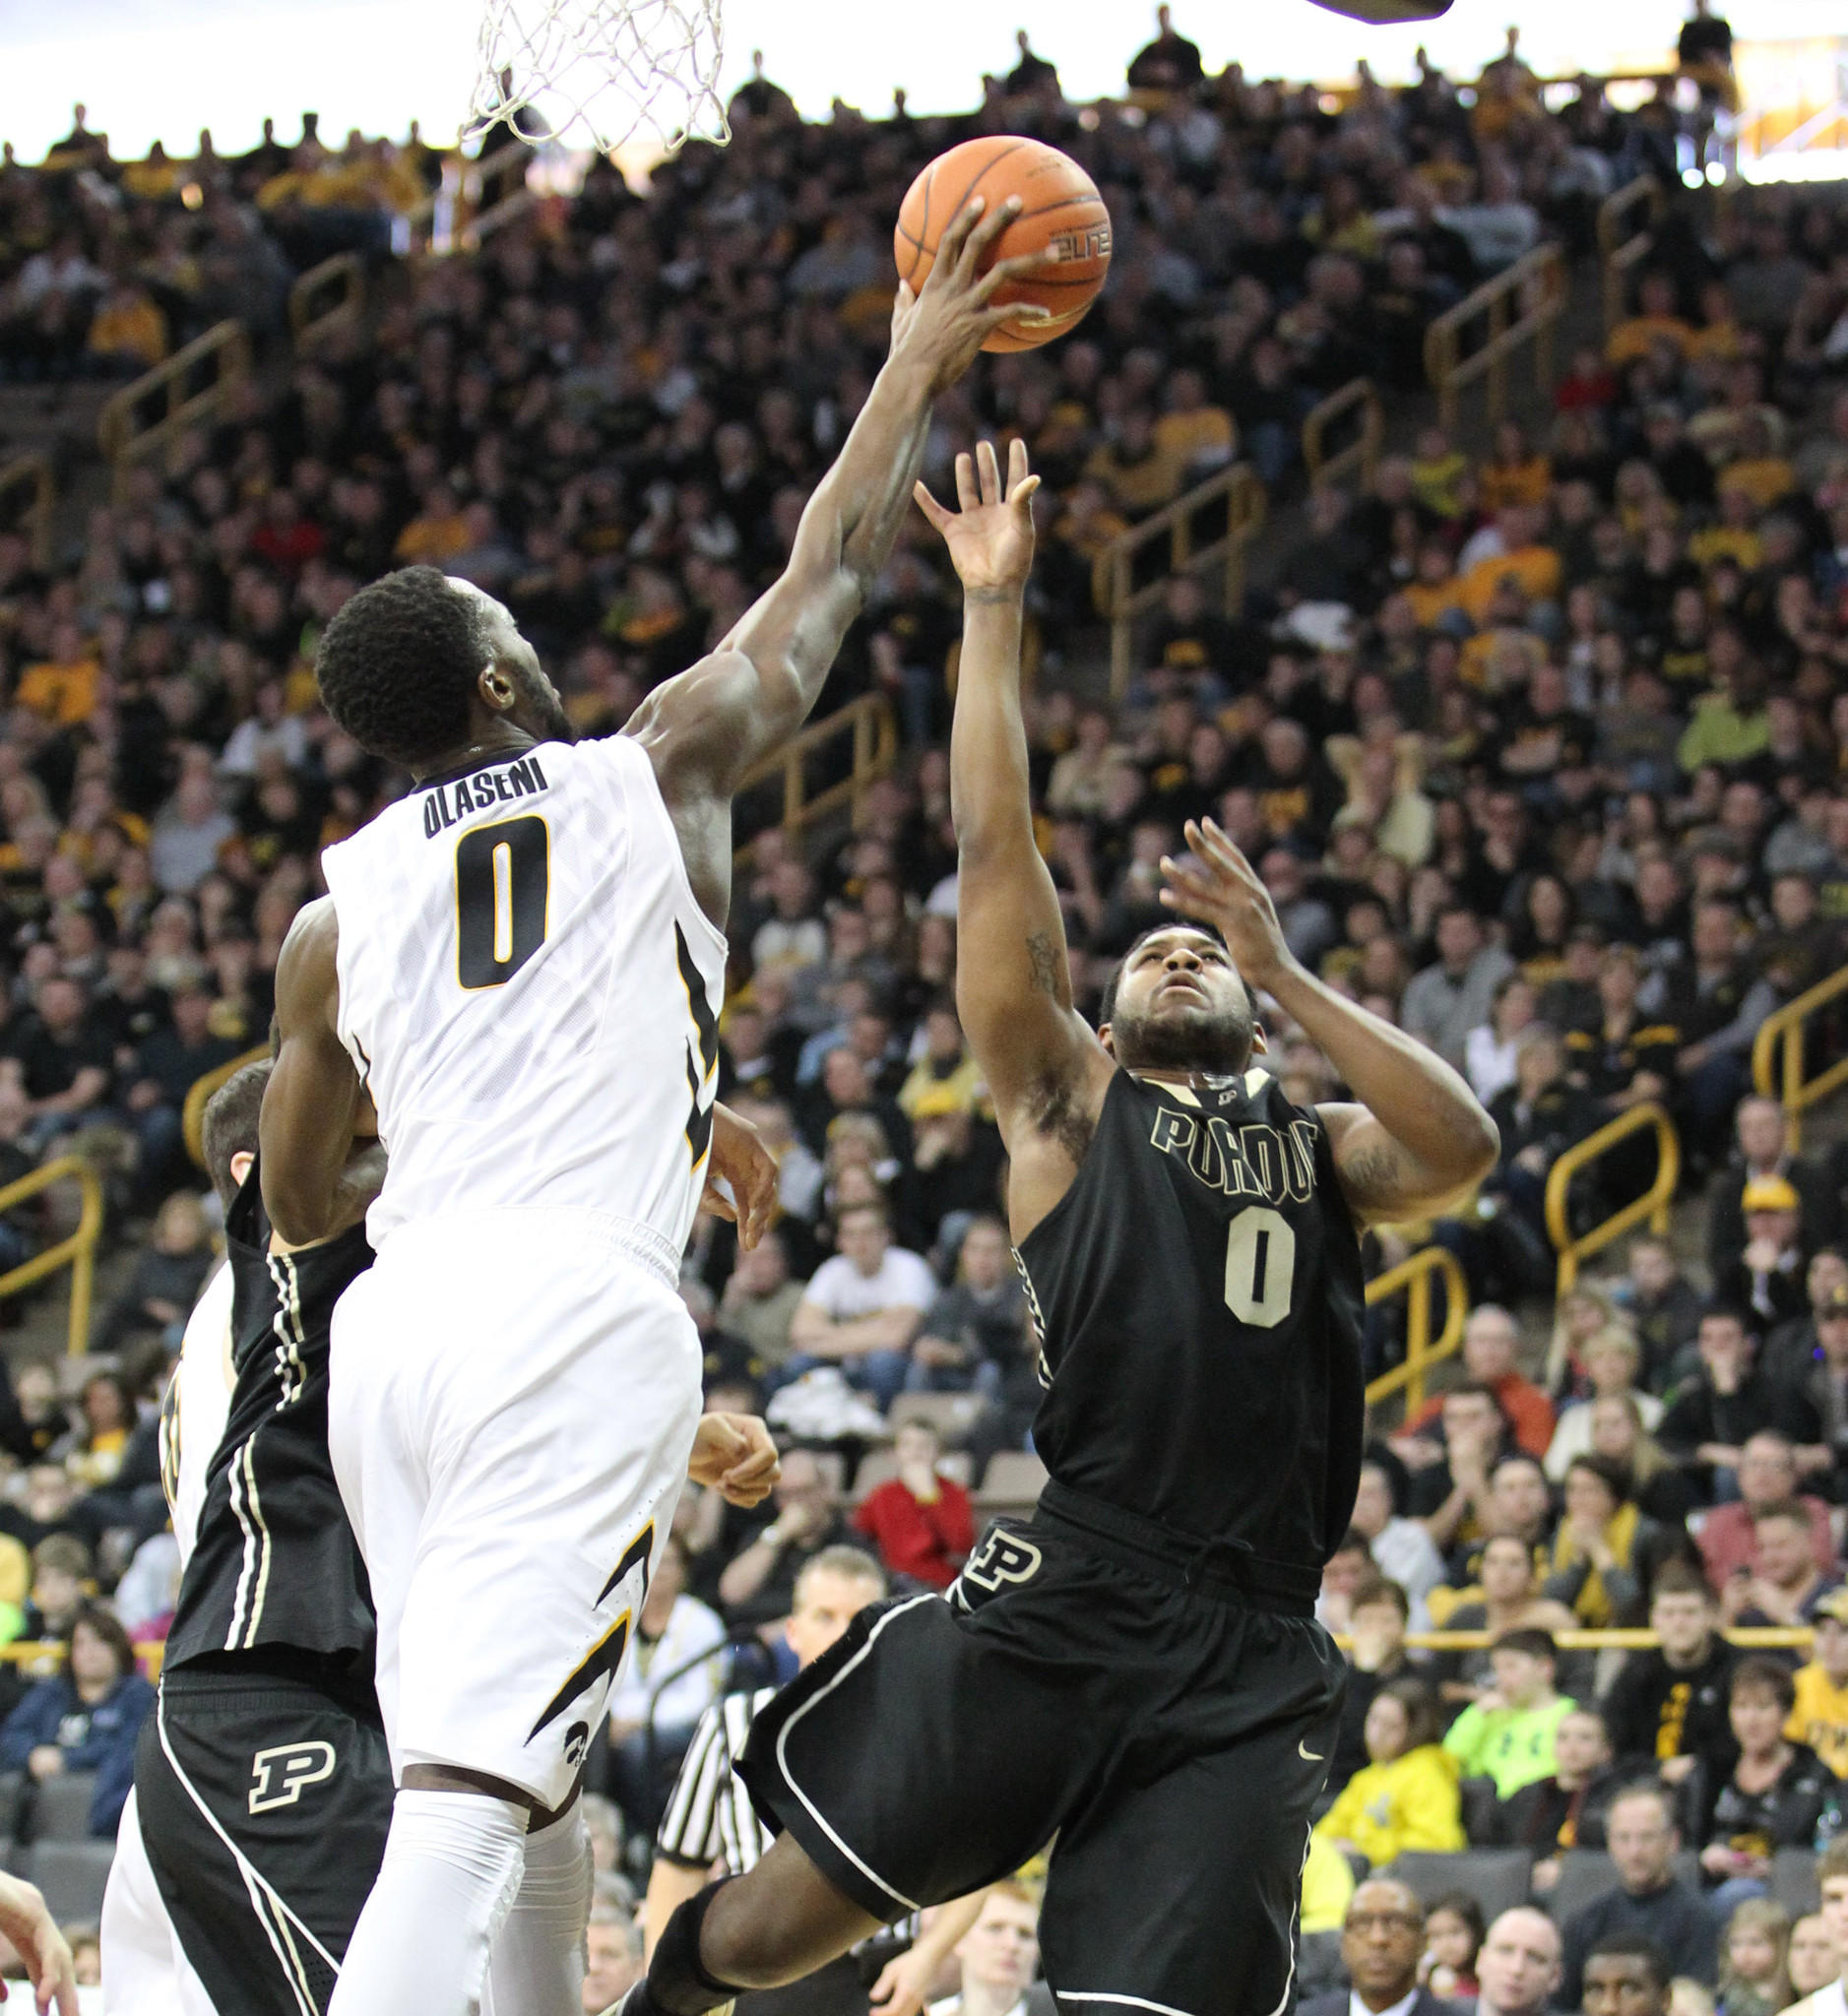 Iowa's Gabriel Olaseni blocks the shot of Purdue's Terone Johnson during the first half.